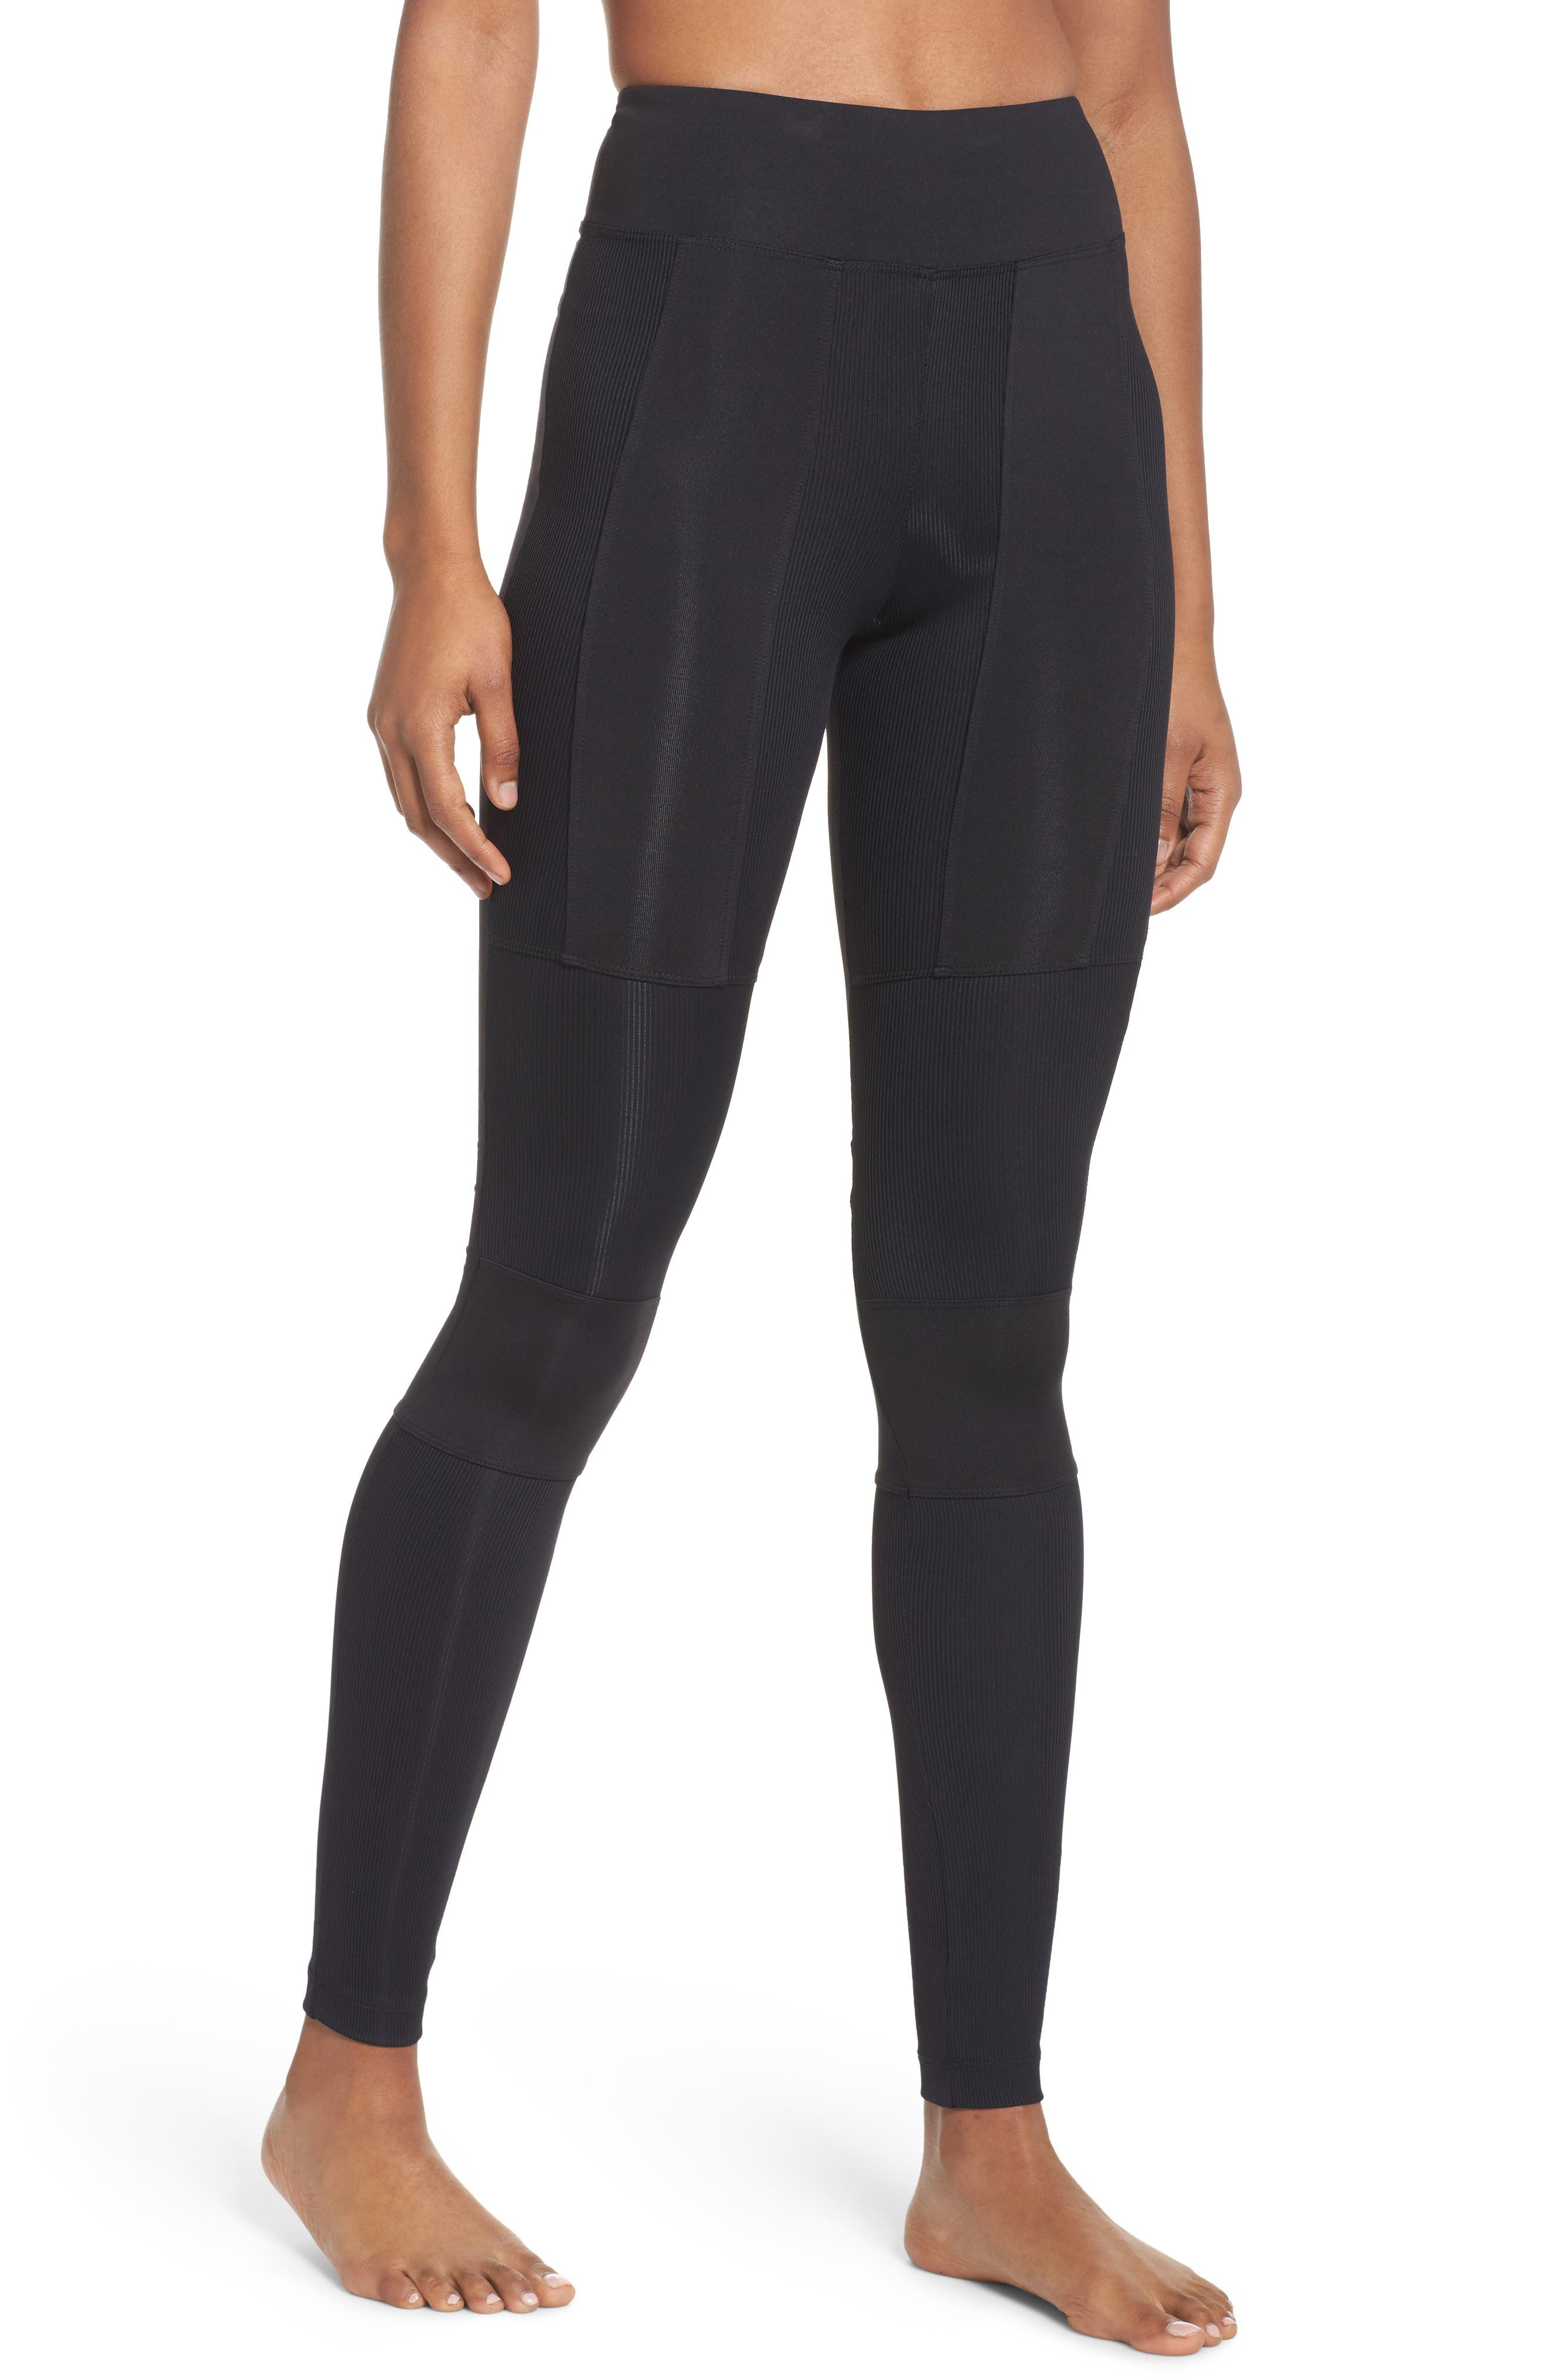 Rappel High Waist Leggings,                         Main,                         color, 001